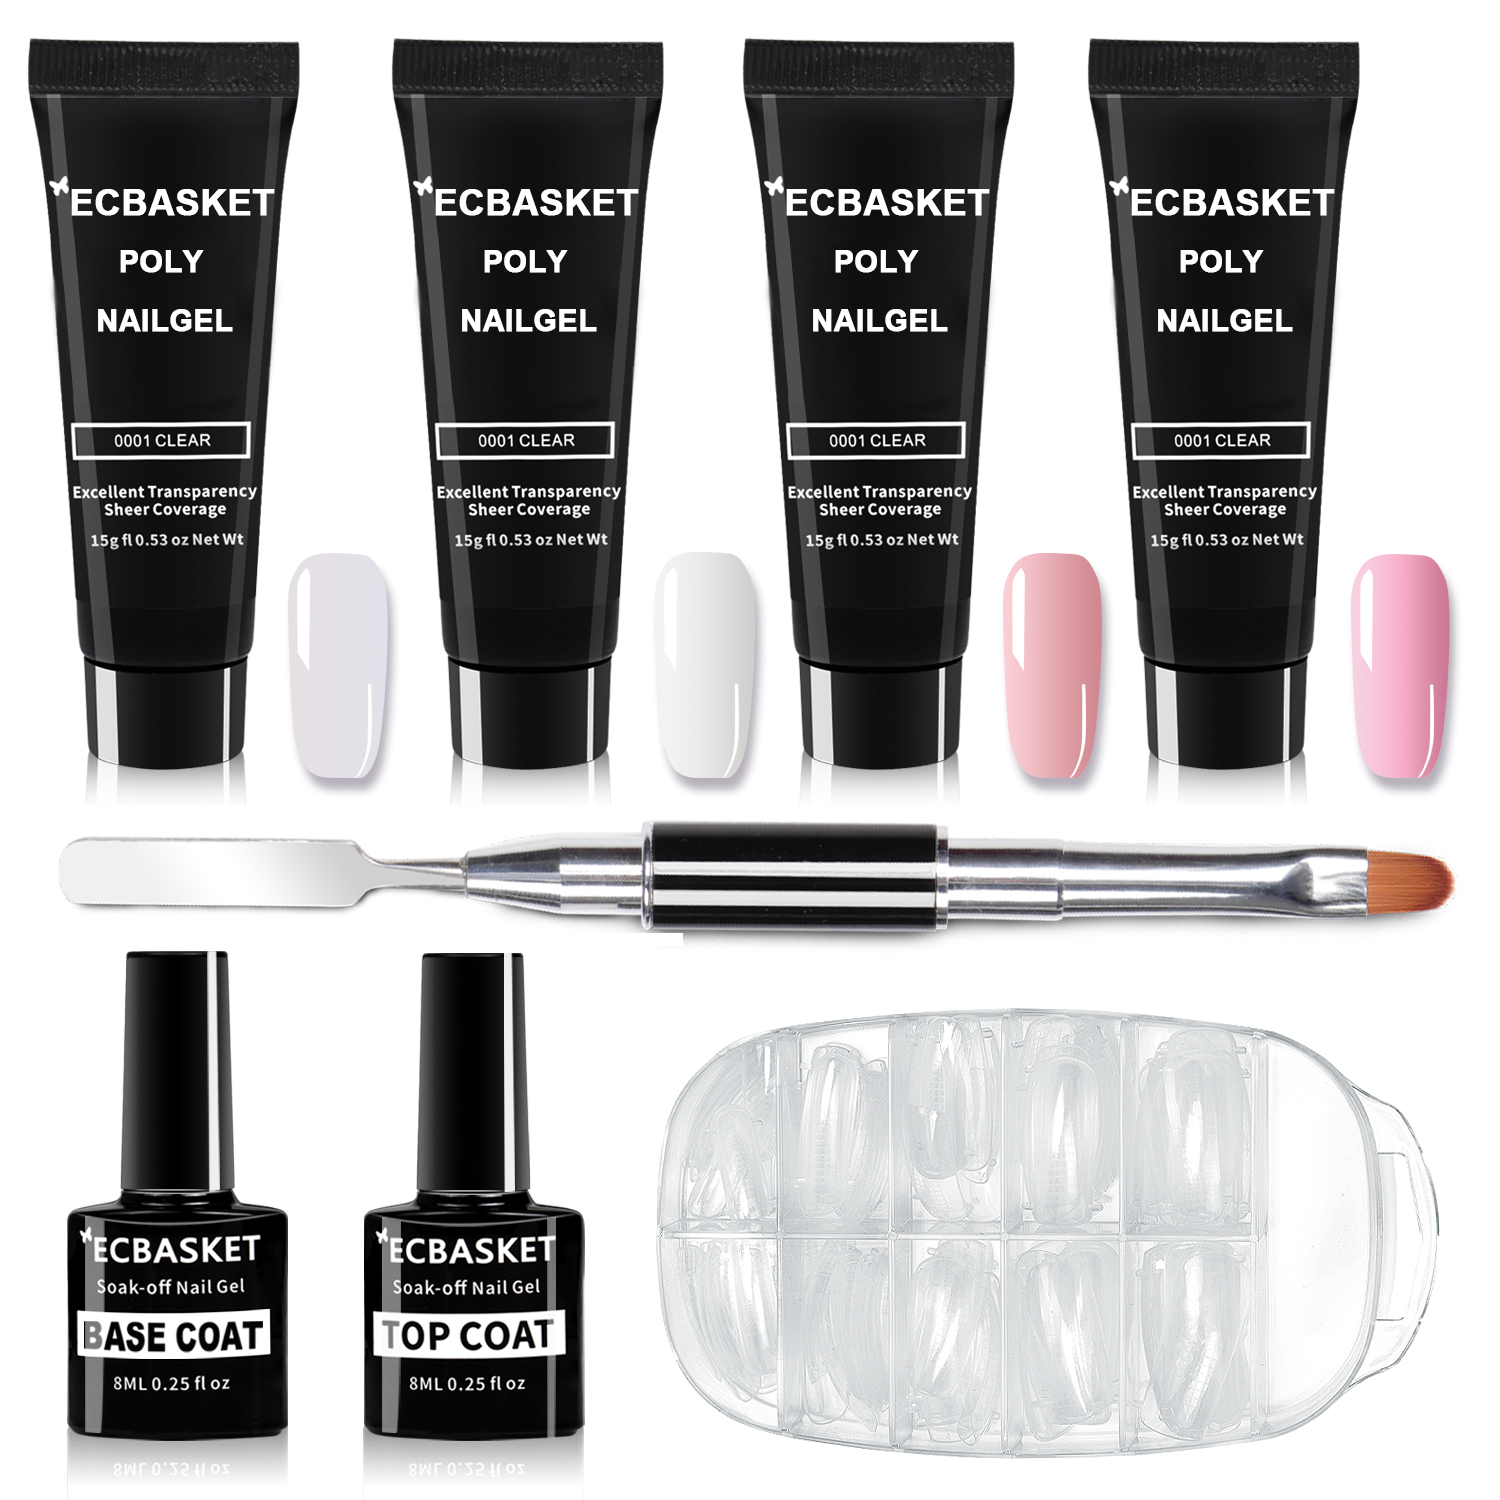 Ecbasket Upc 602168544749 Poly Nail Gel Kit Gel Nail Extension Professional Gel Nail Enhancement Builder System All In One Nail Technician French Kit